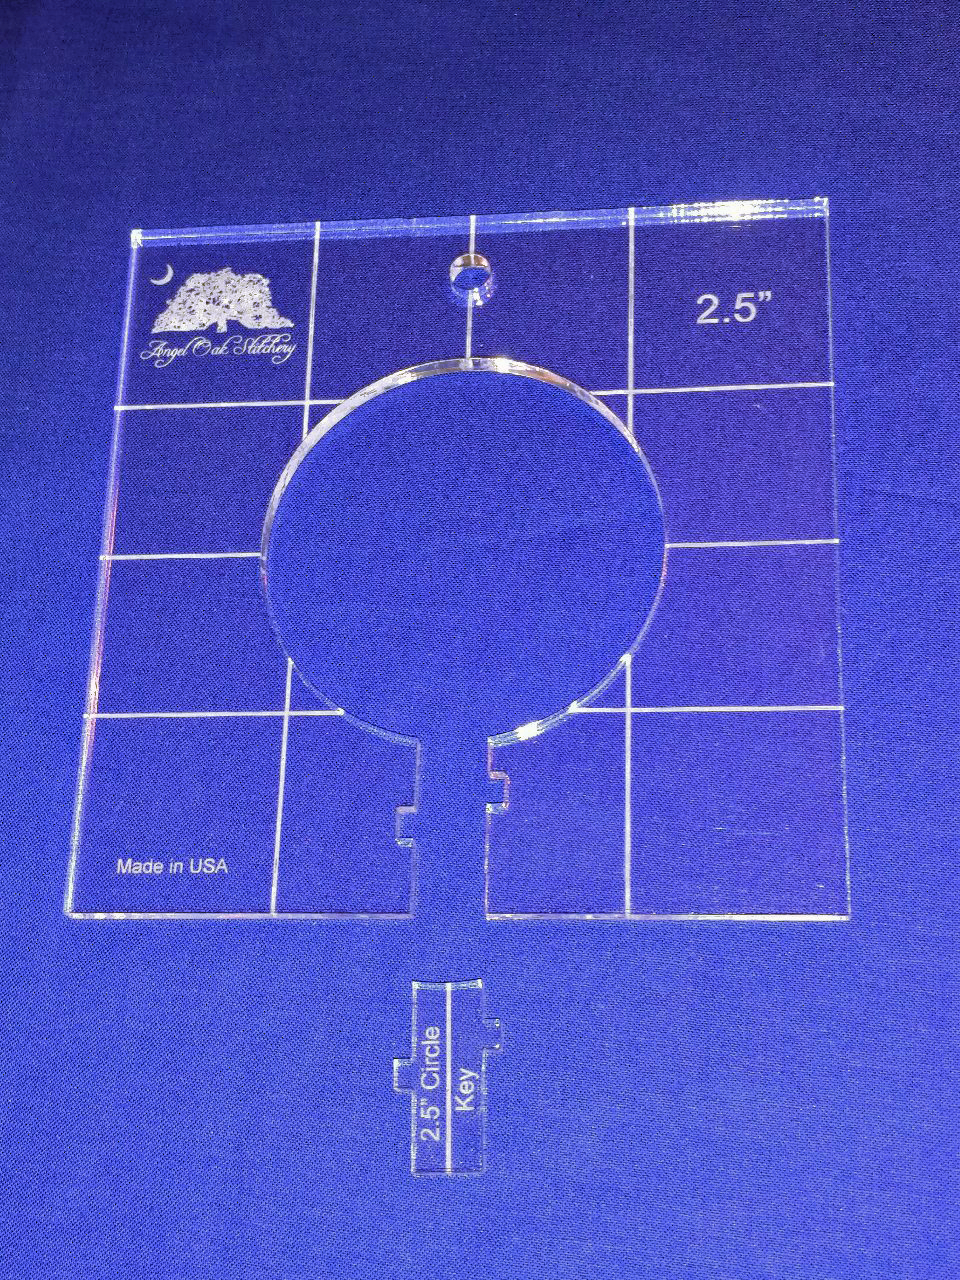 2-1/2 inch Circle Low Shank Rulerwork Quilting Template